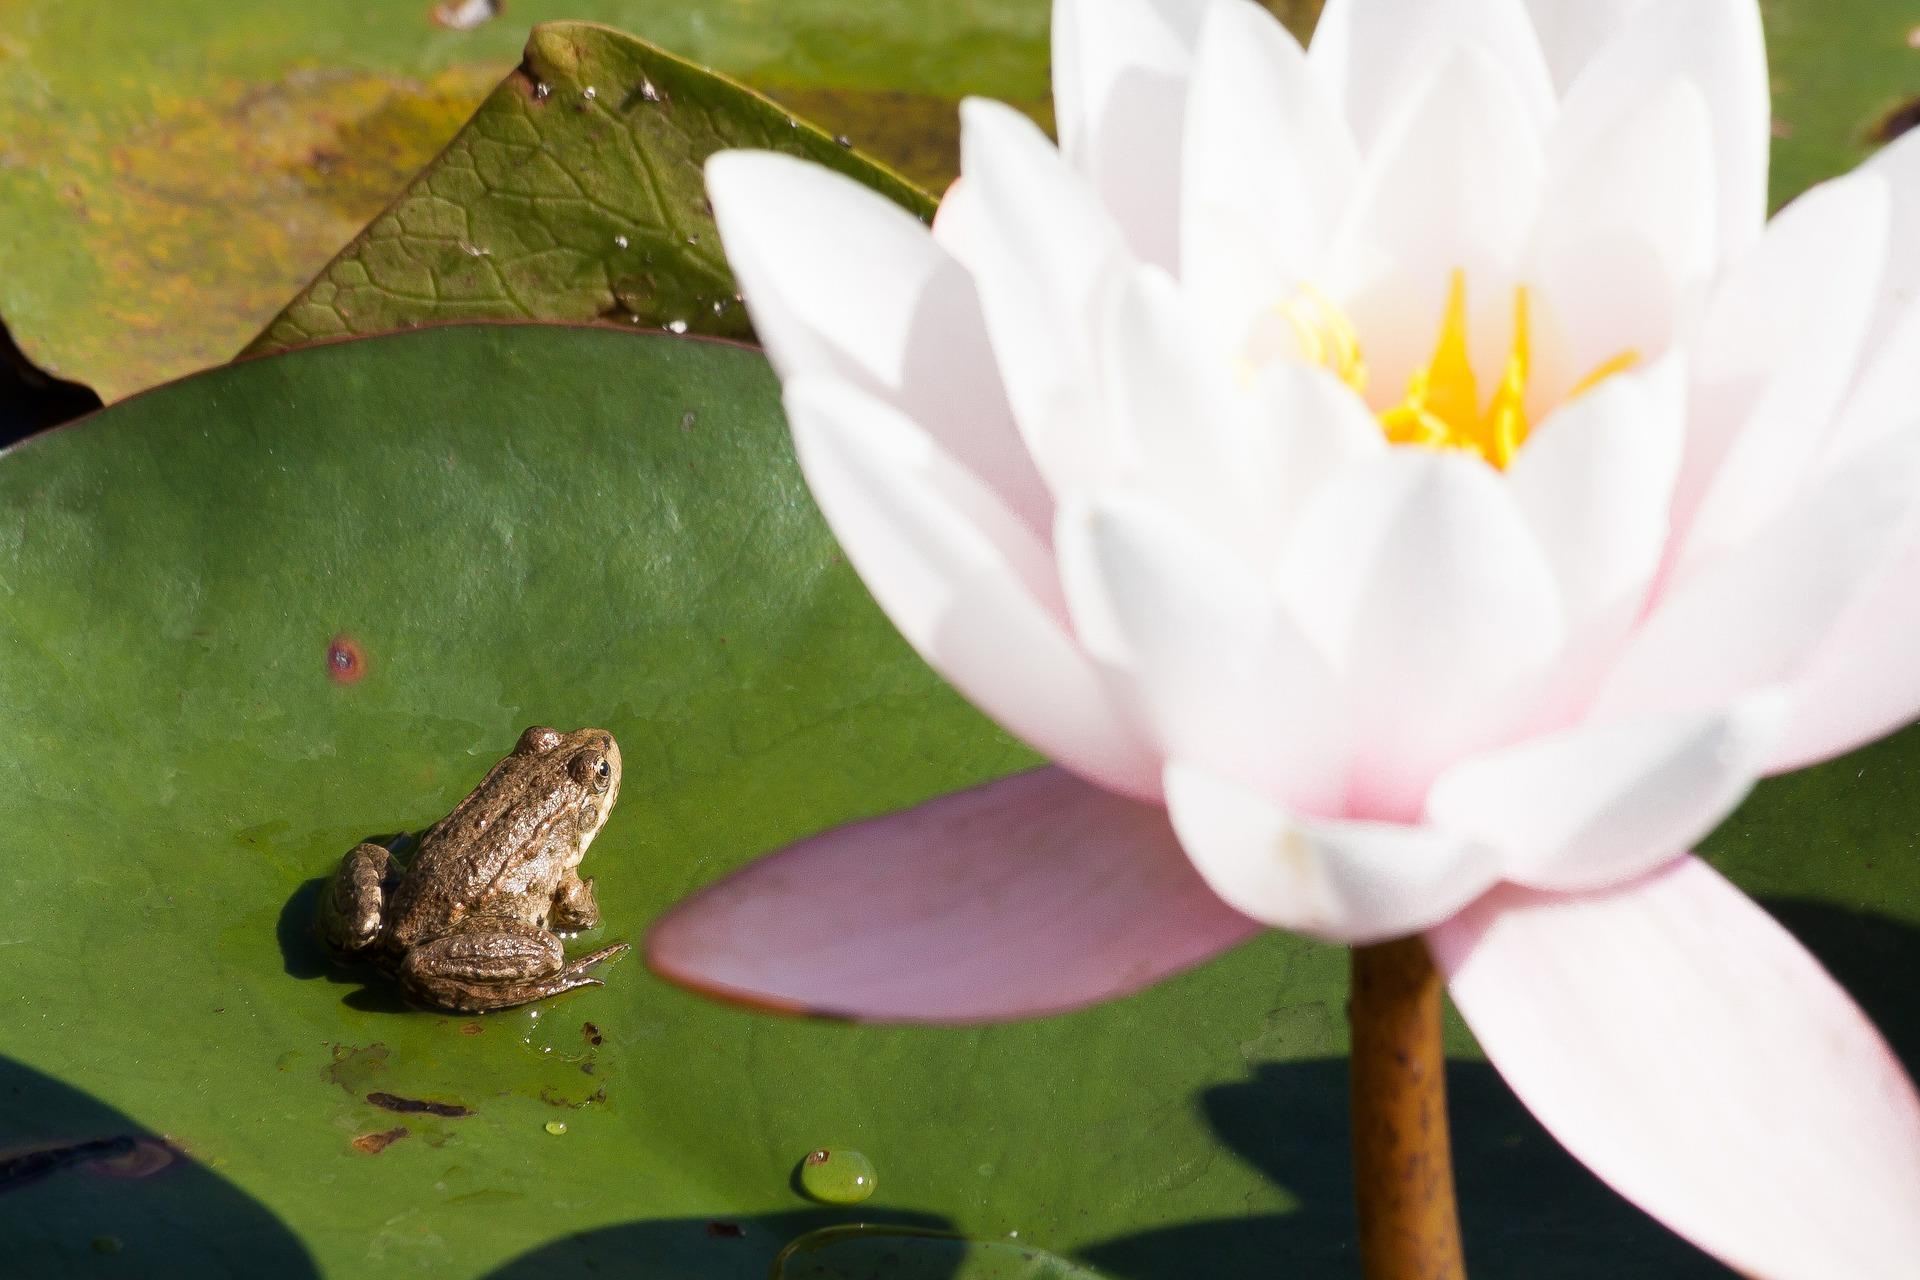 grenouille-et-nenuphars-photographie-HD_2